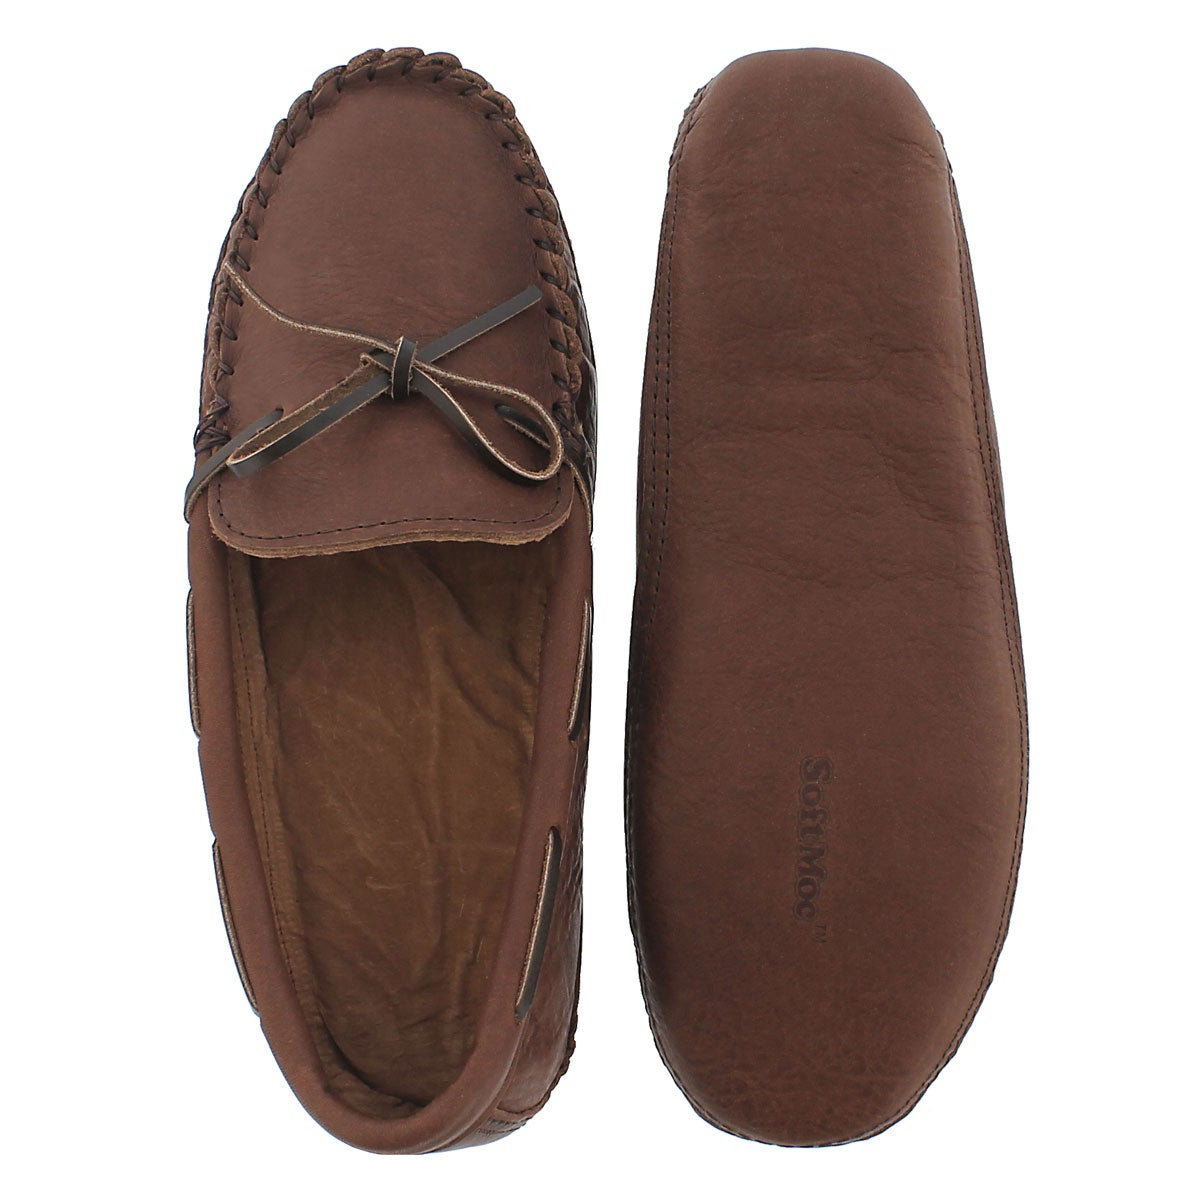 Mns 1471 brown lthr moccasin